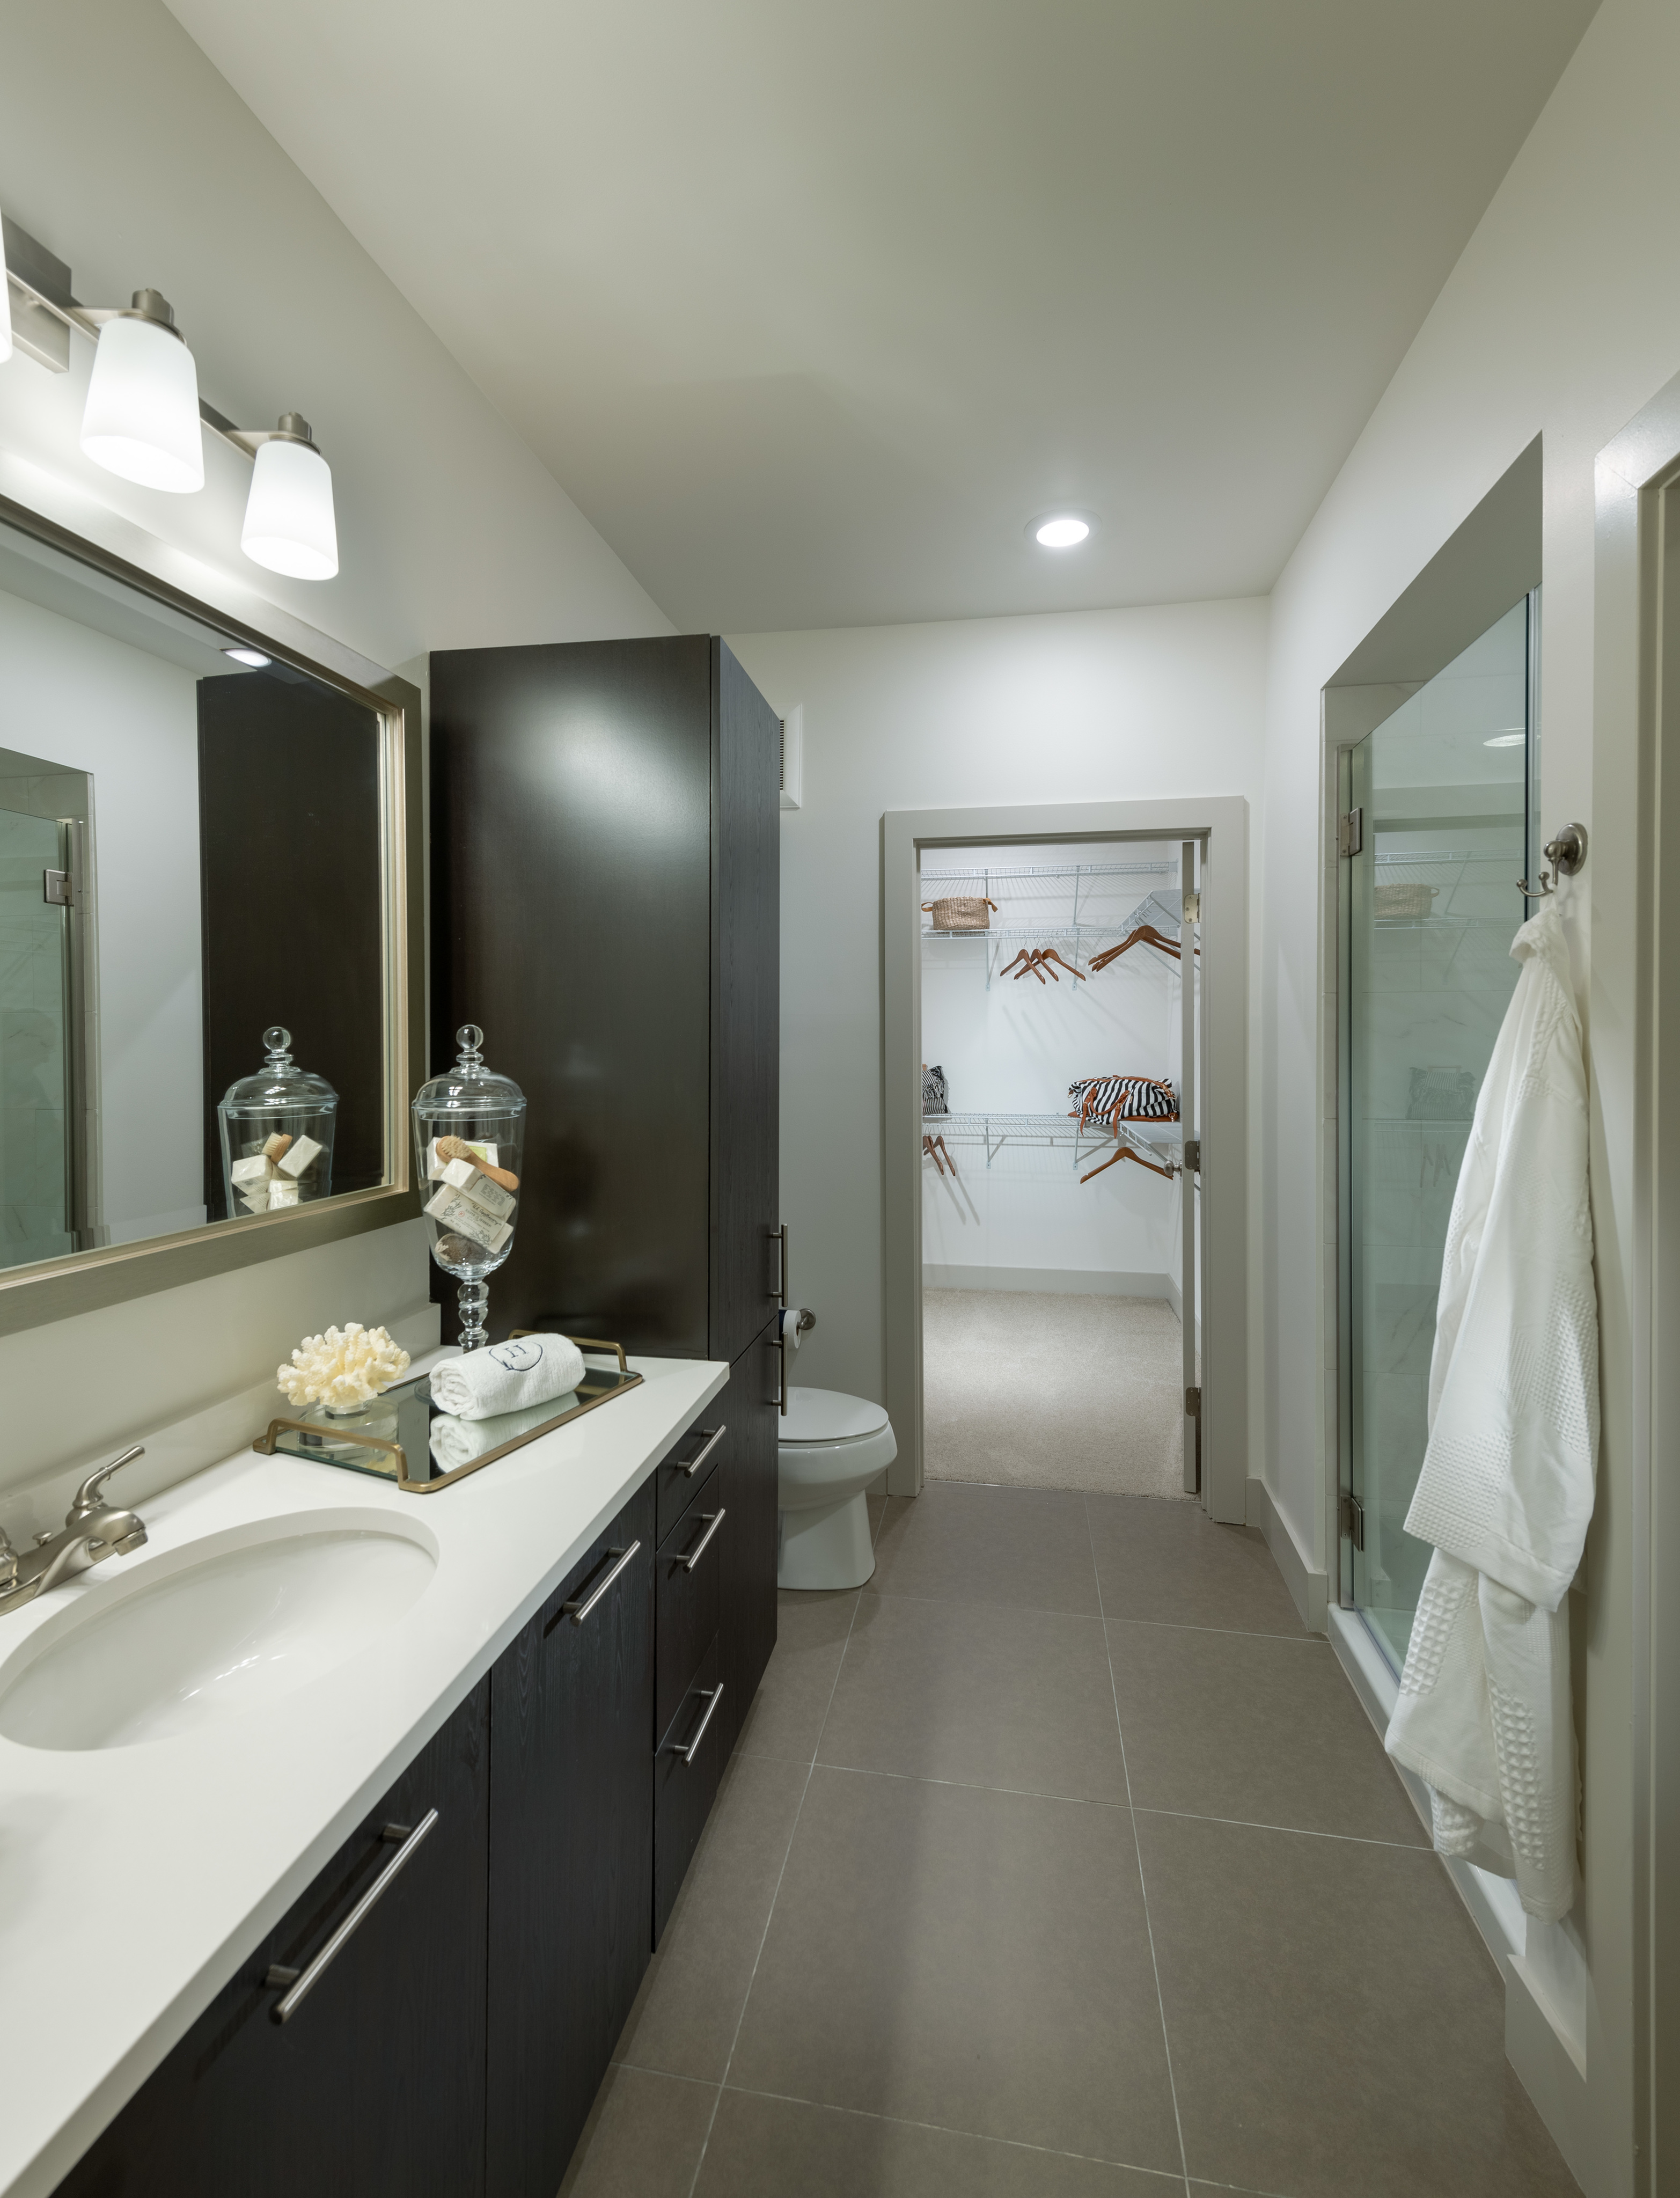 Image of Spa-like bathrooms with oversized soaking tubs for Hanover Westford Valley